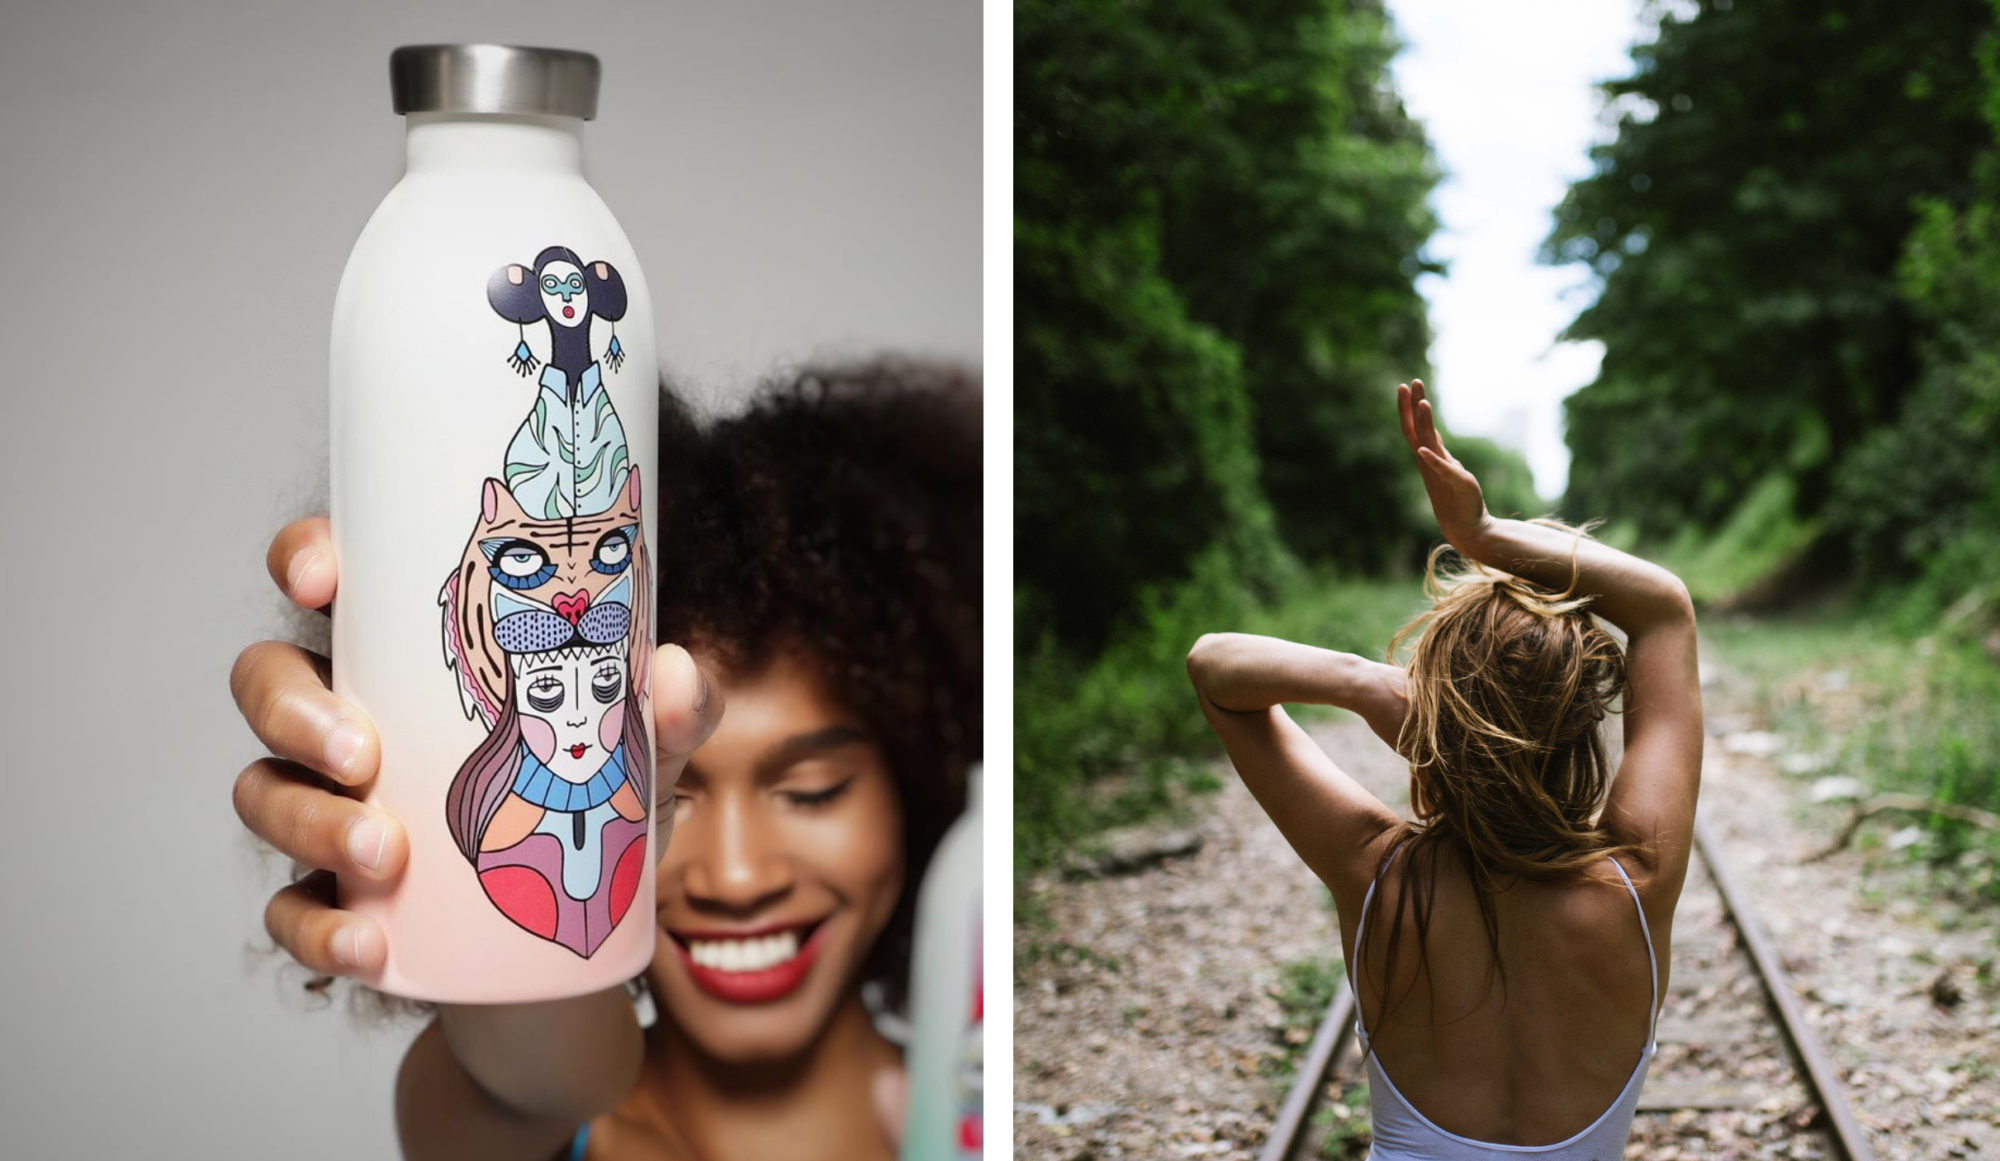 A custom designed water bottle by 24 Bottles for cutting own on plastic use, held up by influencer Elena Salmistraro (left). A young woman seen from the back feeling the heat of Parisian summer as she walks on the Petite Ceinture railway in Paris (right).